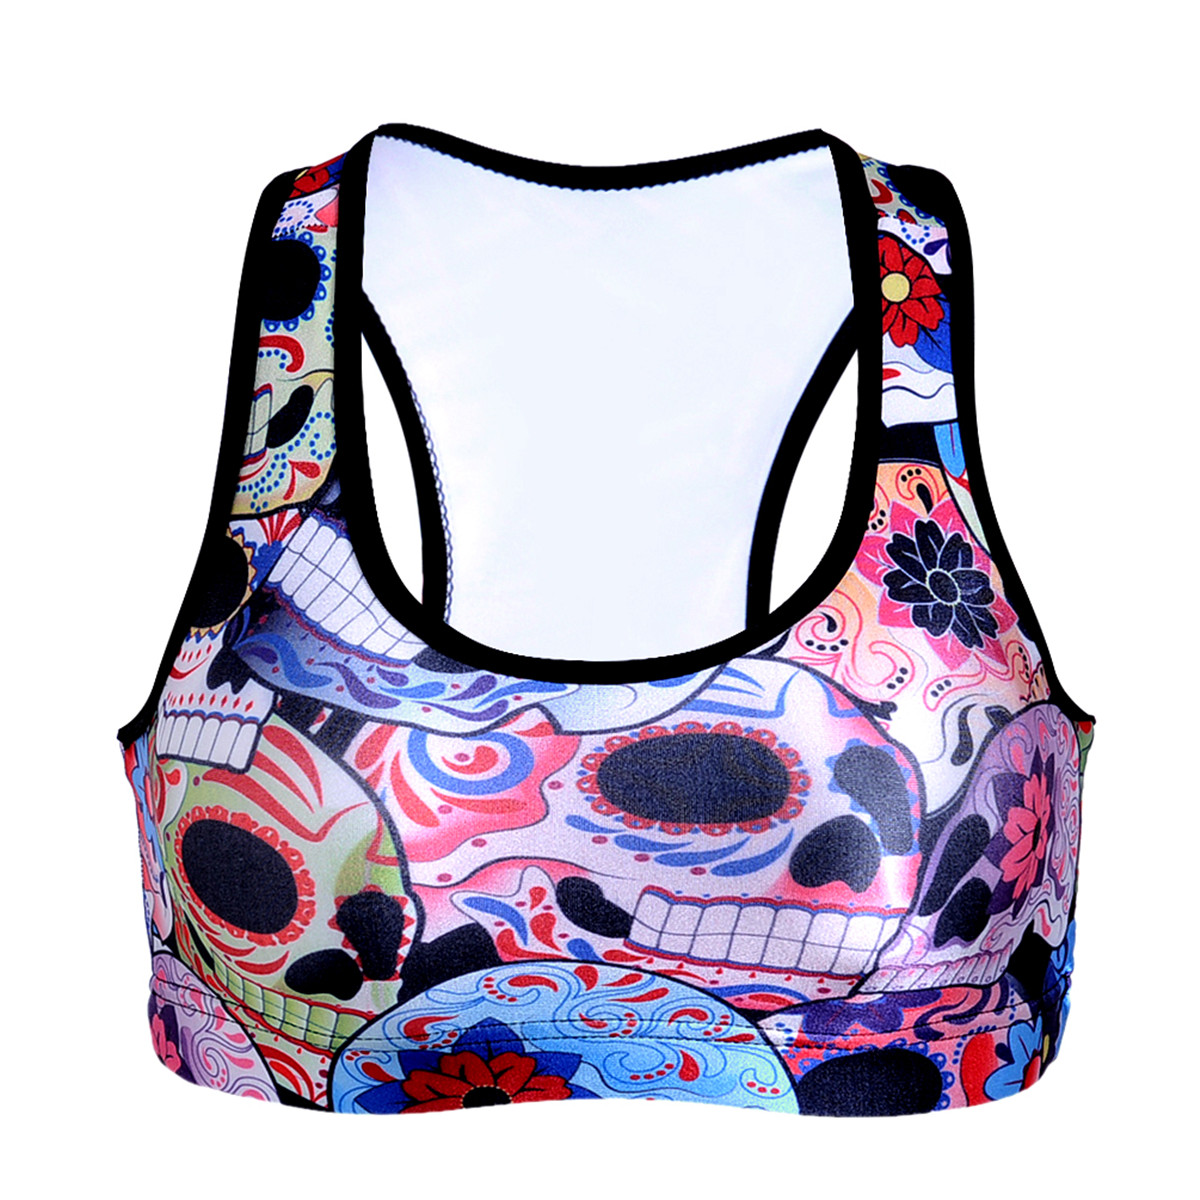 Compare Prices on Bra Built in Tank Top- Online Shopping/Buy Low ...